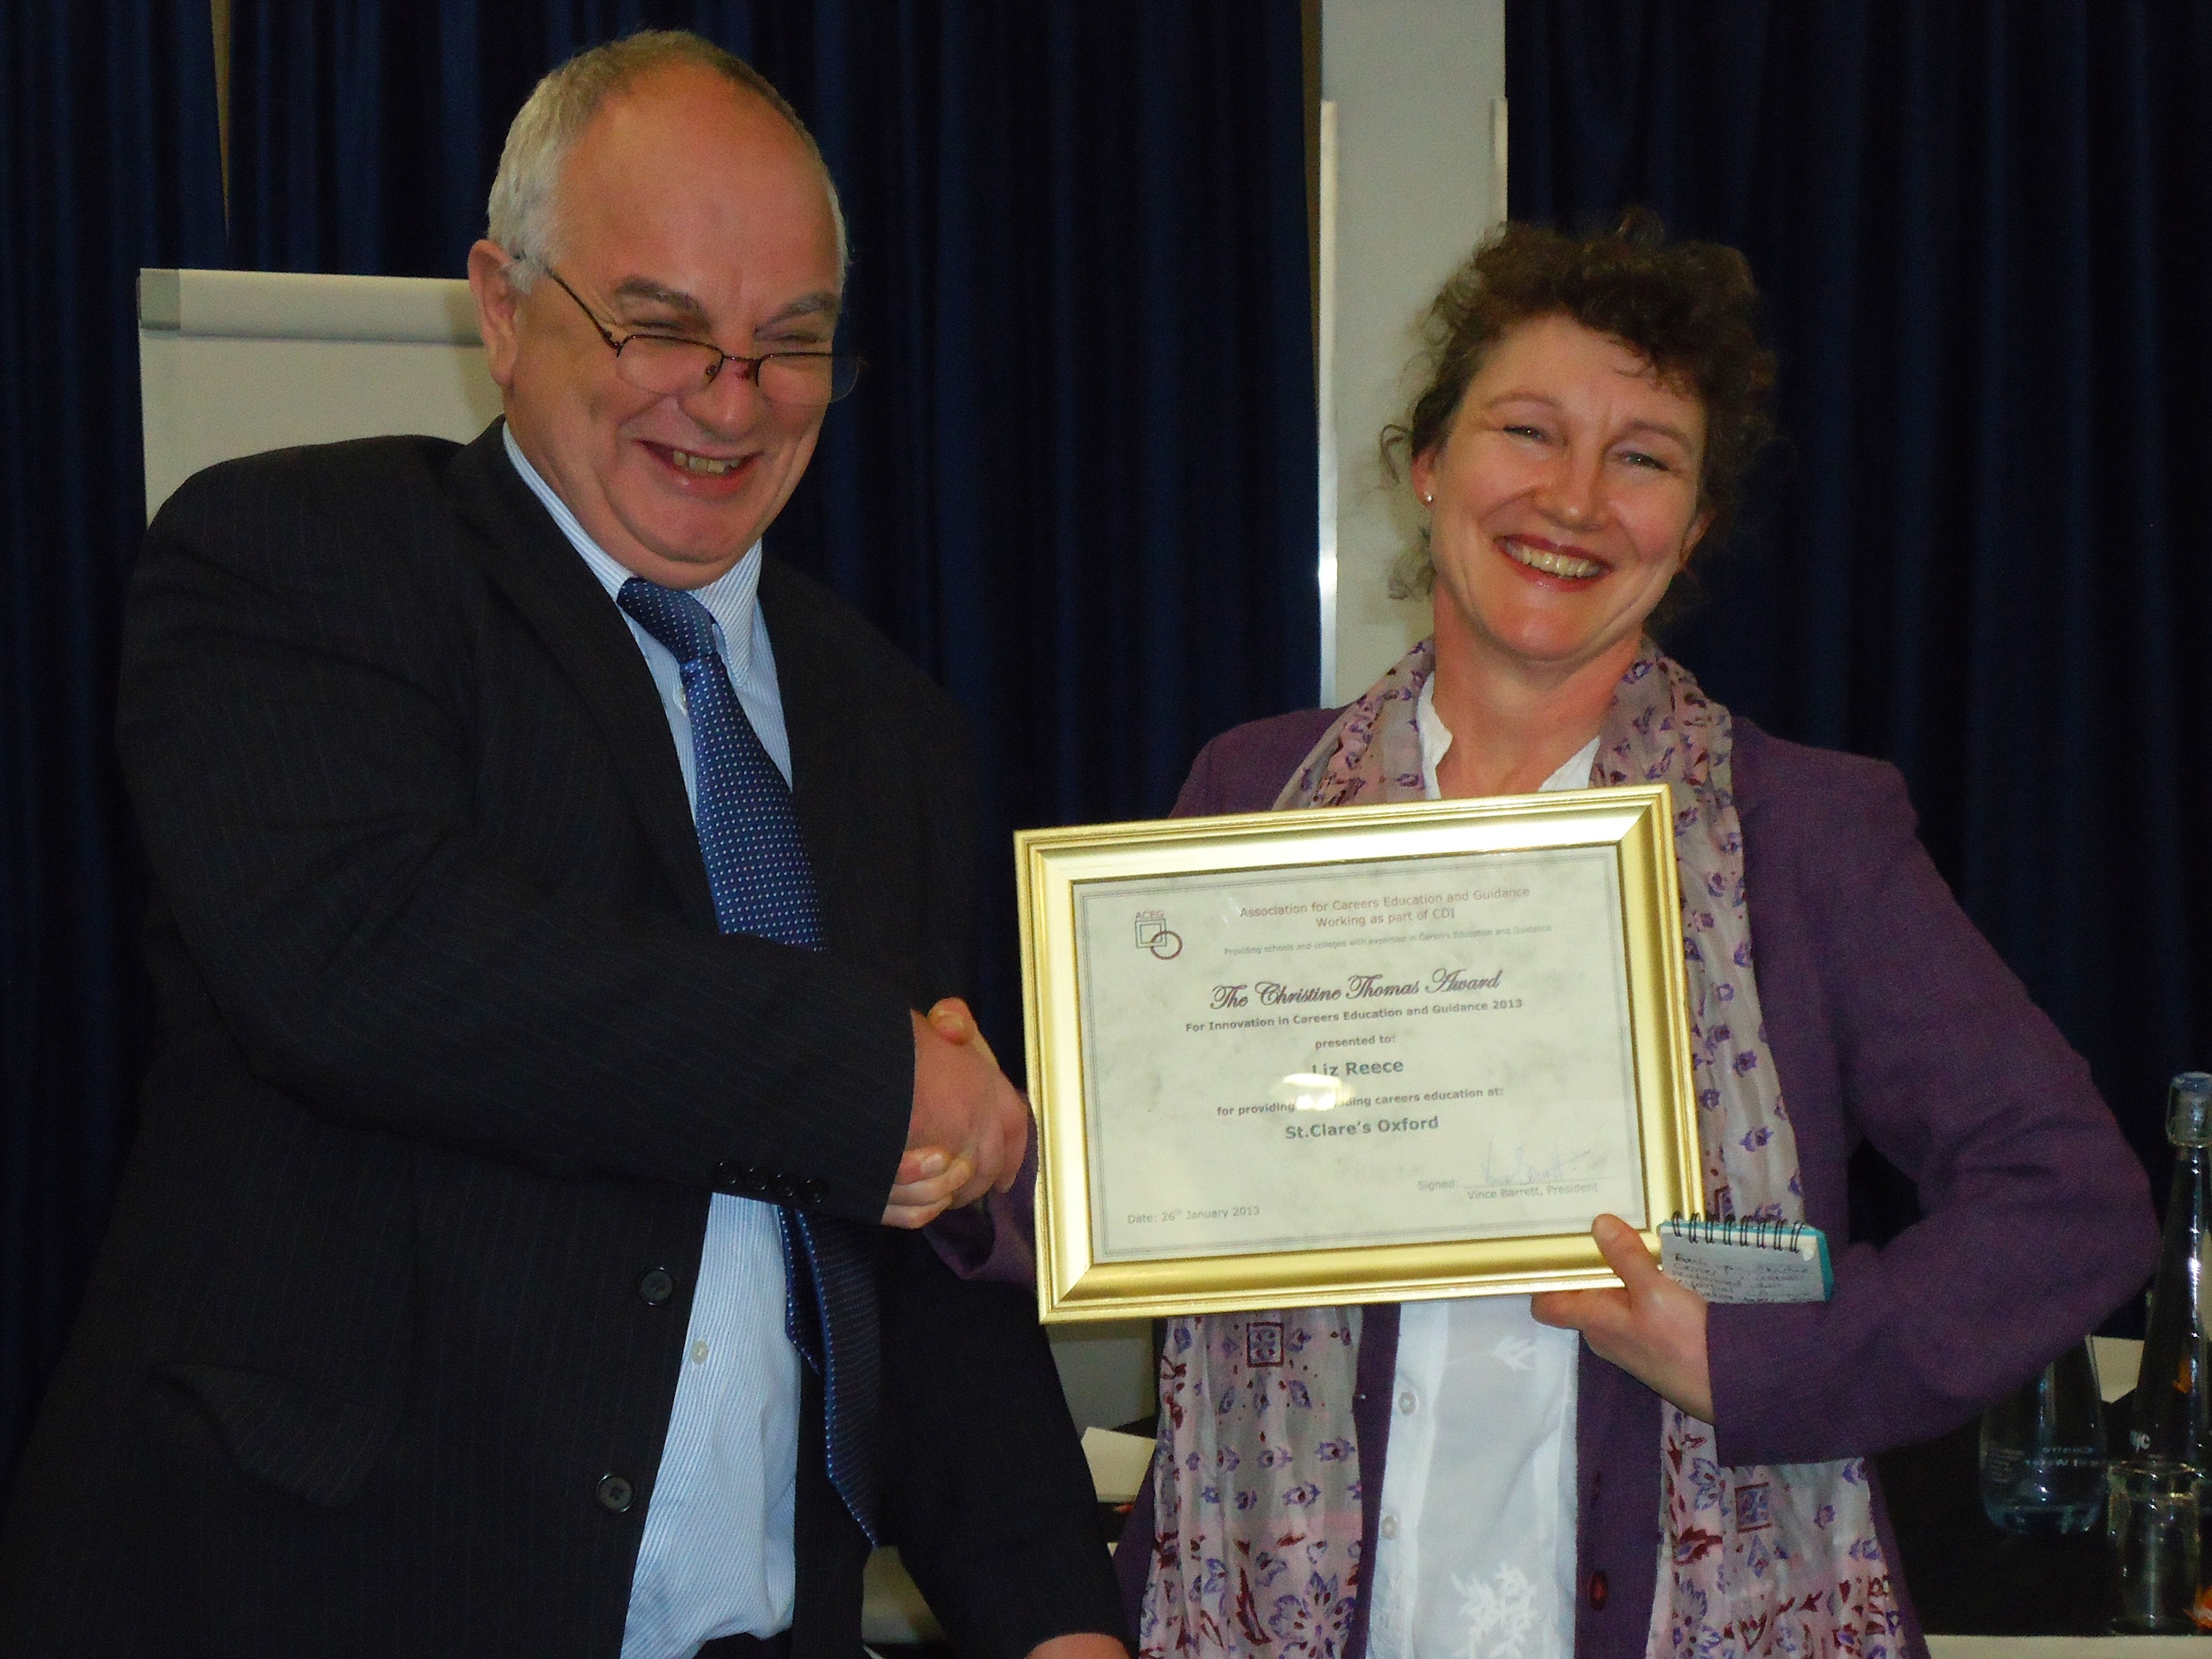 Liz receives national award for excellence and innovation in careers education and guidance